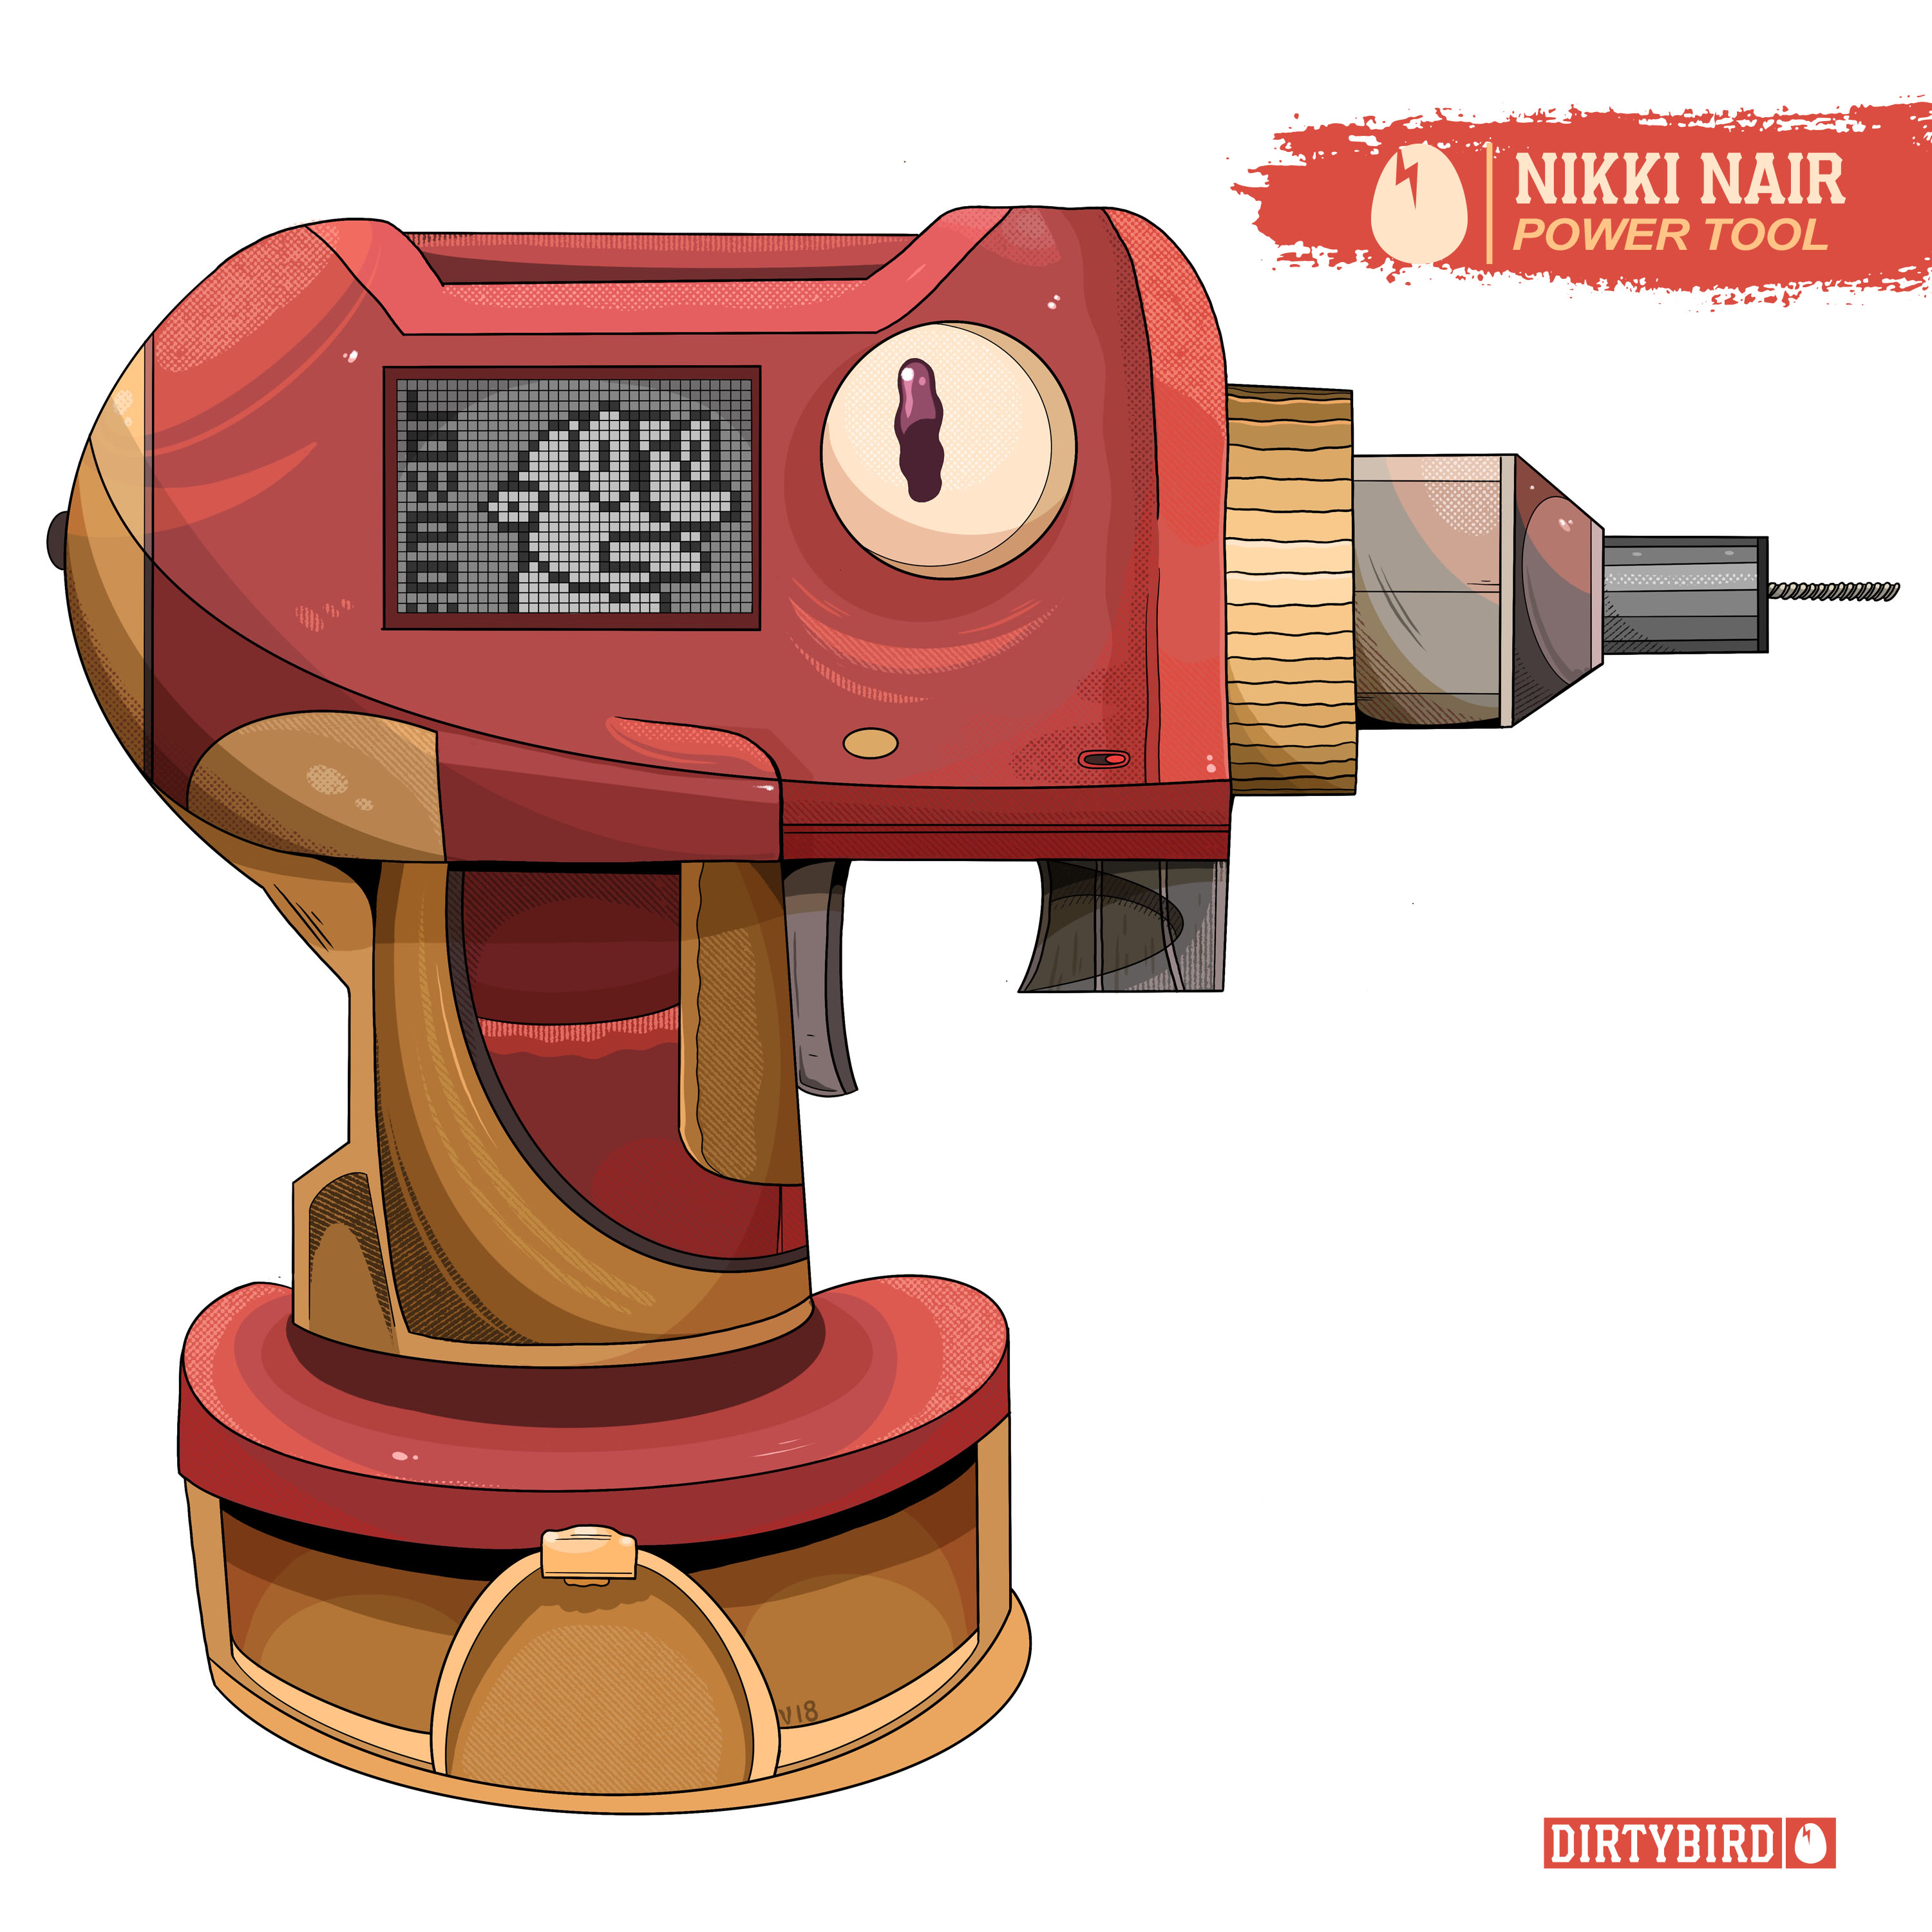 Nikkinair powertool